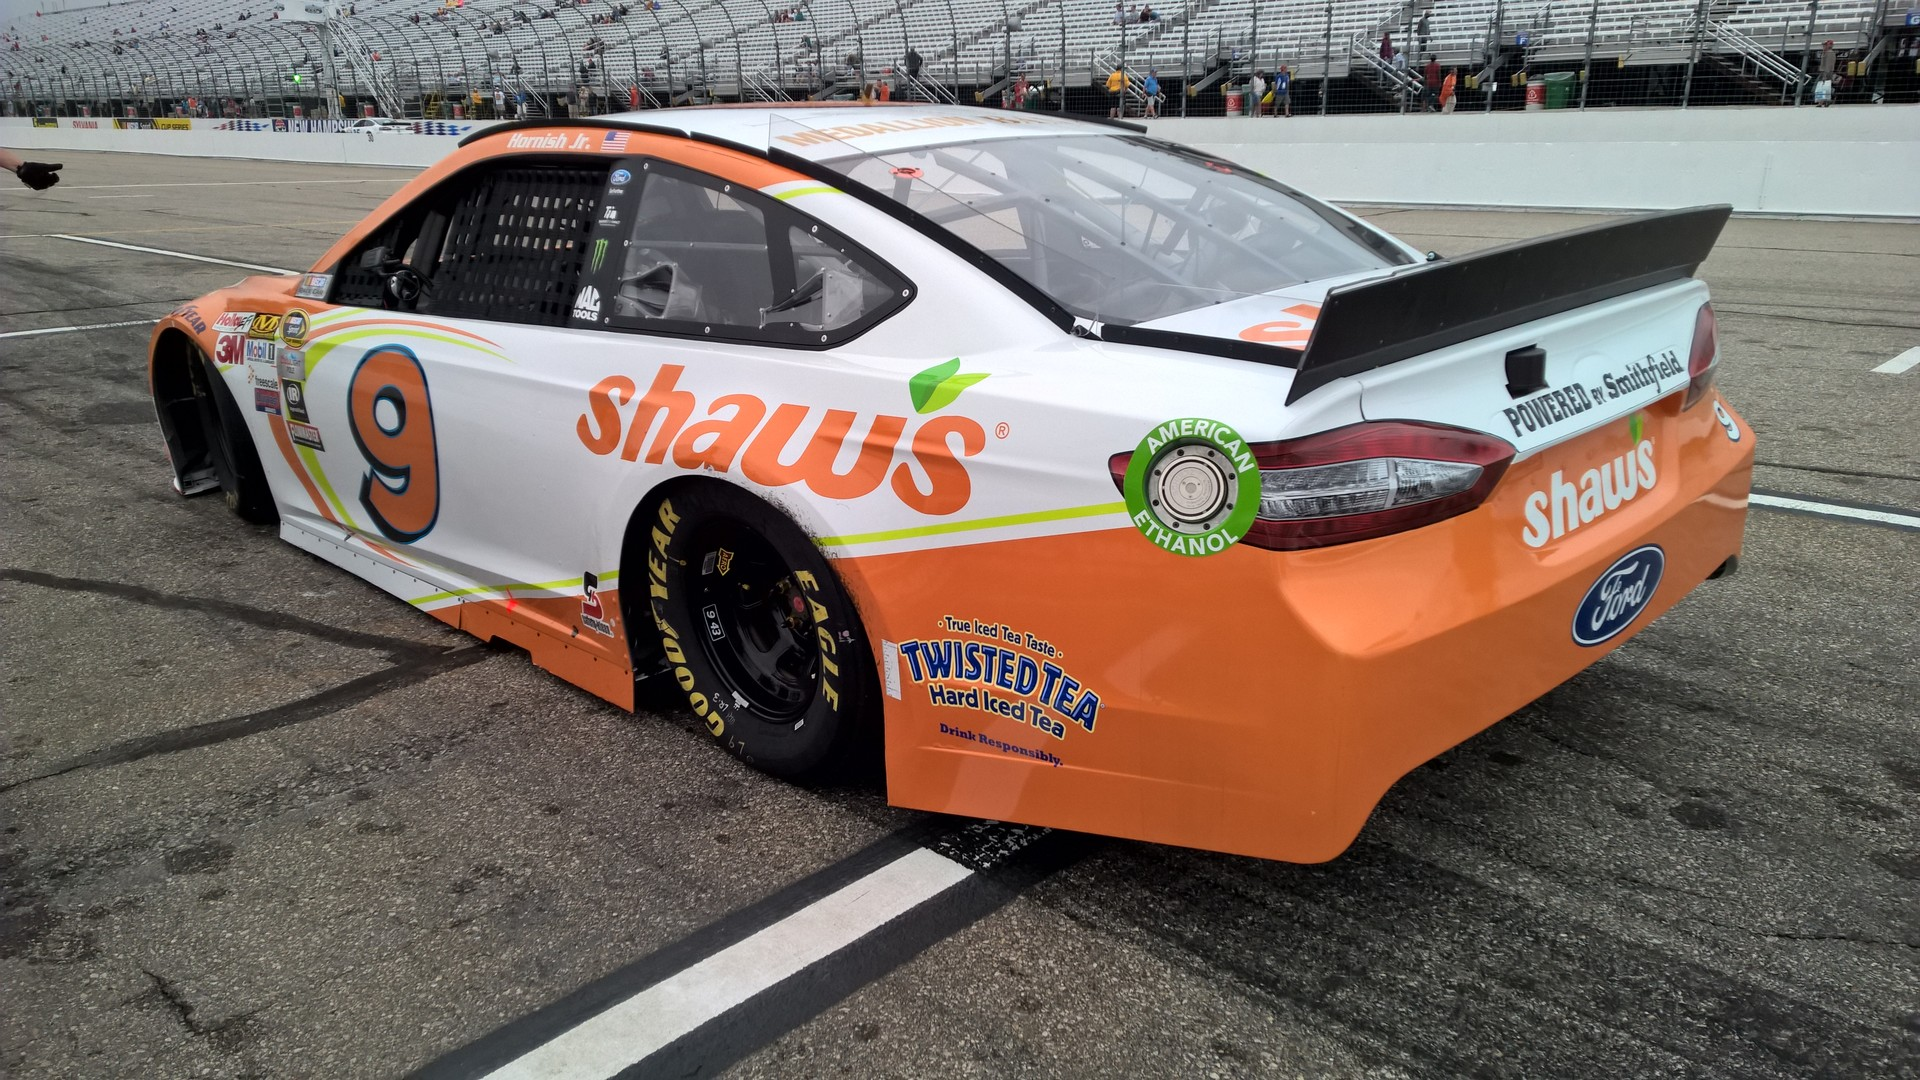 The #9 Shaw's Supermarkets Ford Fusion during a practice session at New Hampshire Motor Speedway on July 18th, 2015.